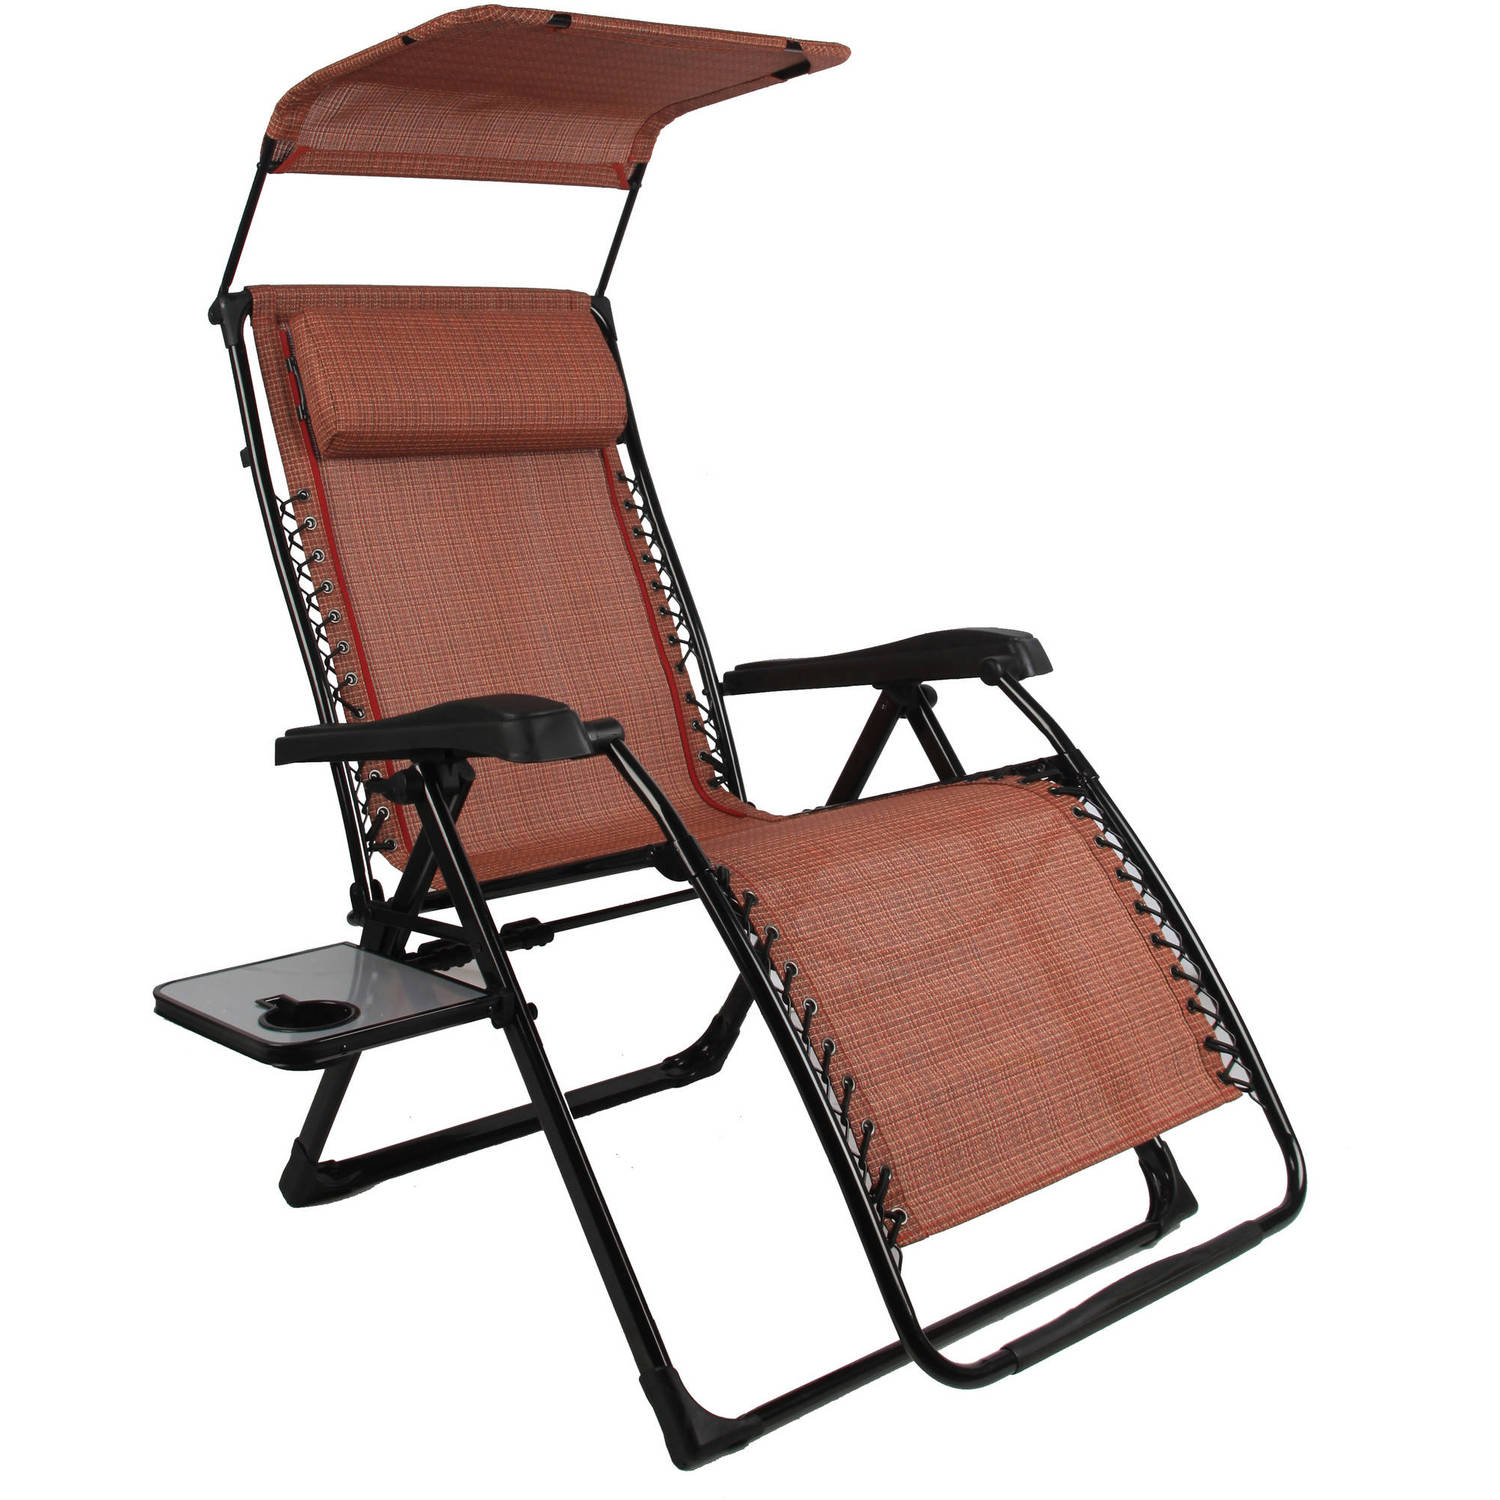 Mainstays Extra Zero Gravity Chair with Side Table and Canopy